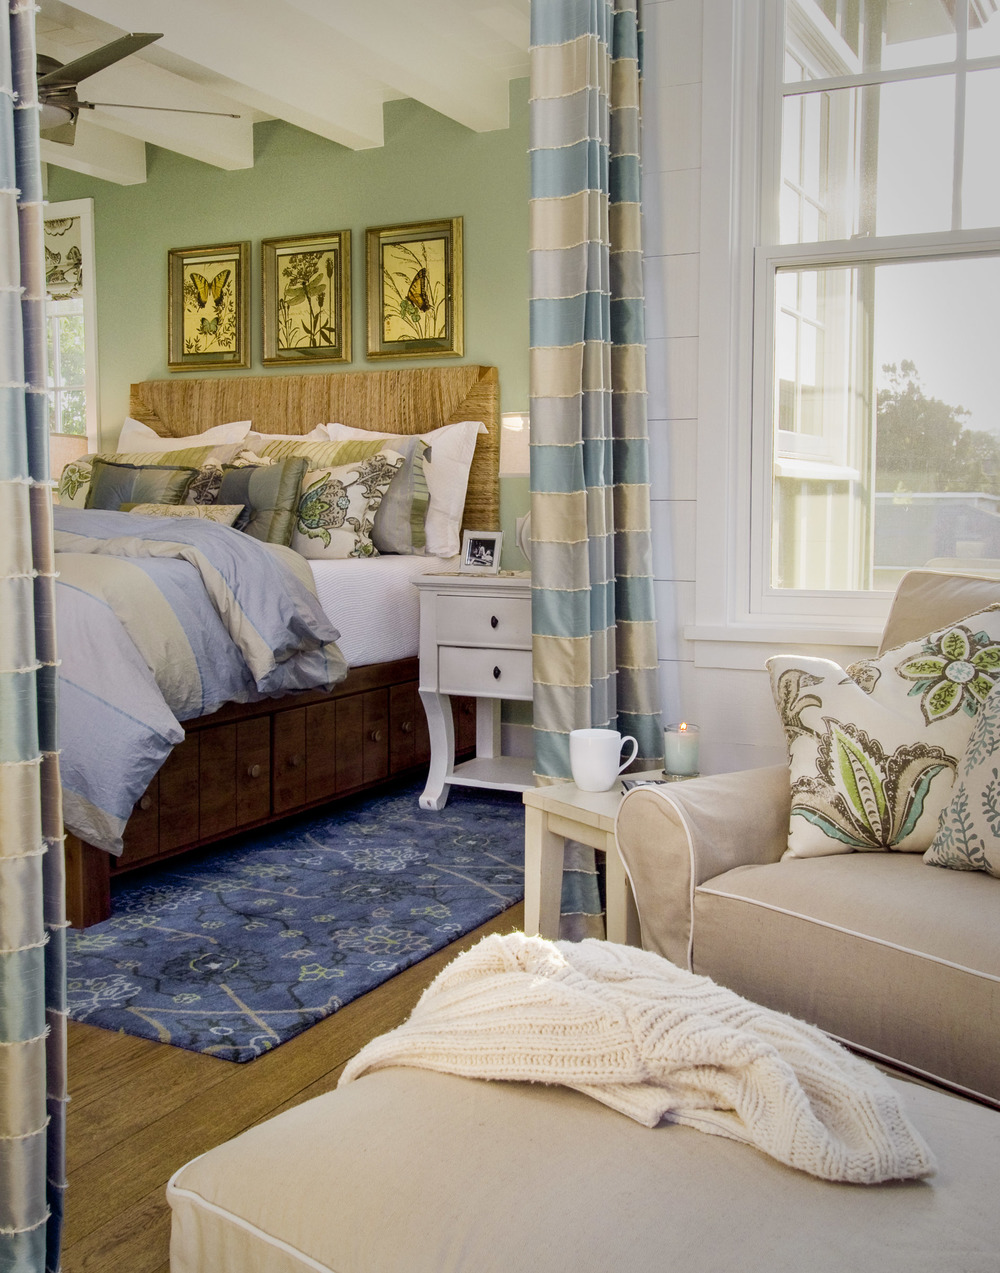 Master Bedroom, Santa Cruz, CA Photographed for Viscusi Elson Interior Design 2009 ASID Gold Award Winner